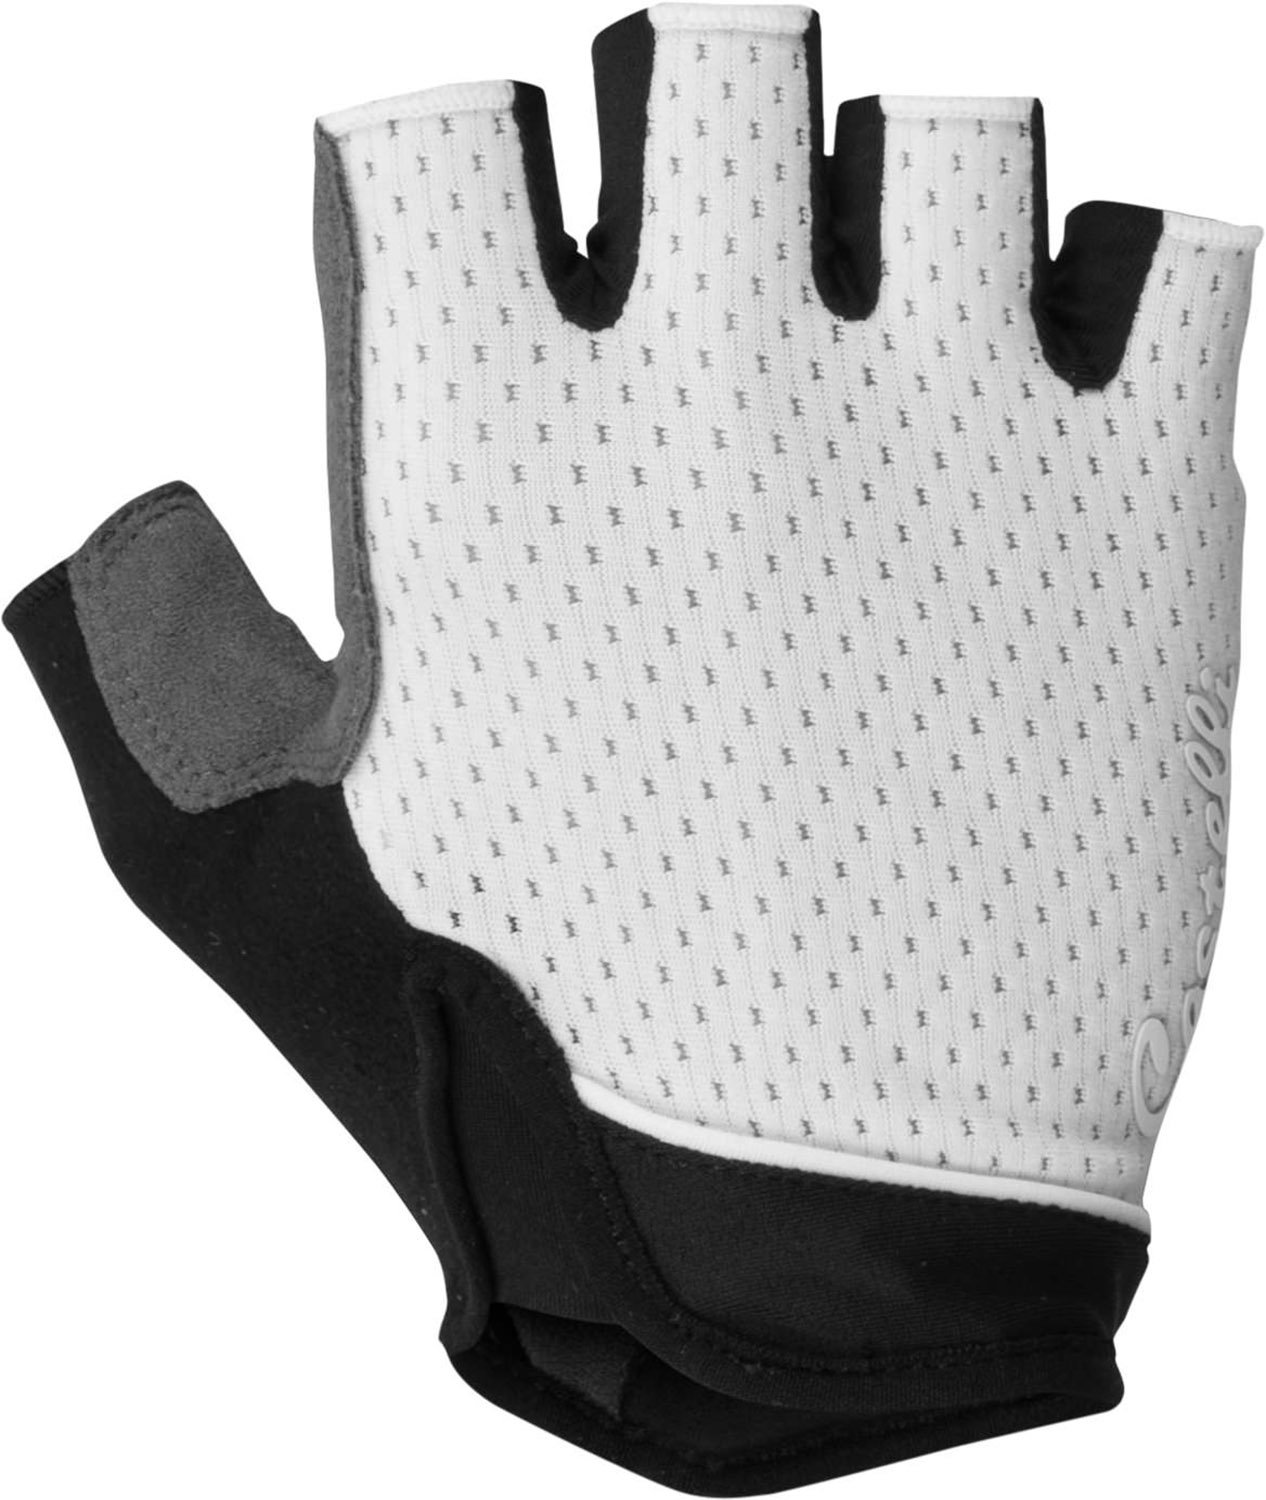 Castelli Arenberg Gel Pad Summer Cycling Glove BRAND NEW ⚡⚡3 Colors-All Sizes⚡⚡